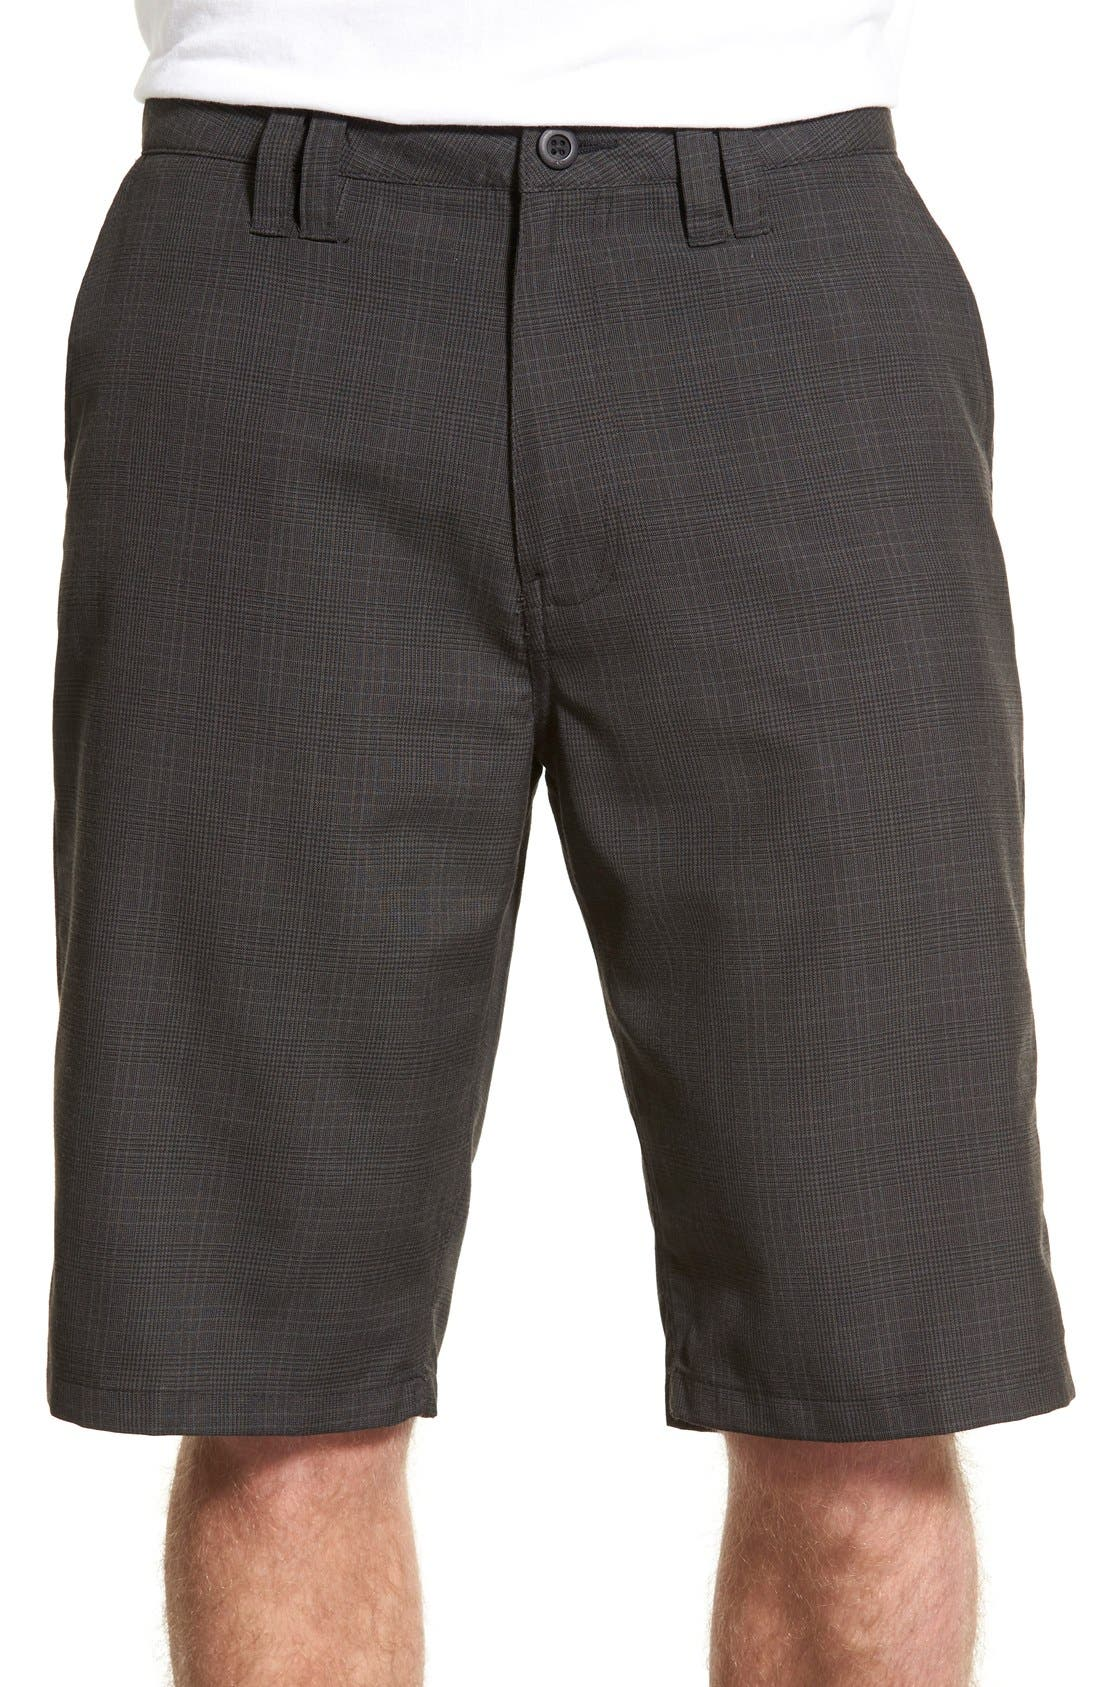 'Delta Plaid' Chino Shorts,                             Main thumbnail 1, color,                             001